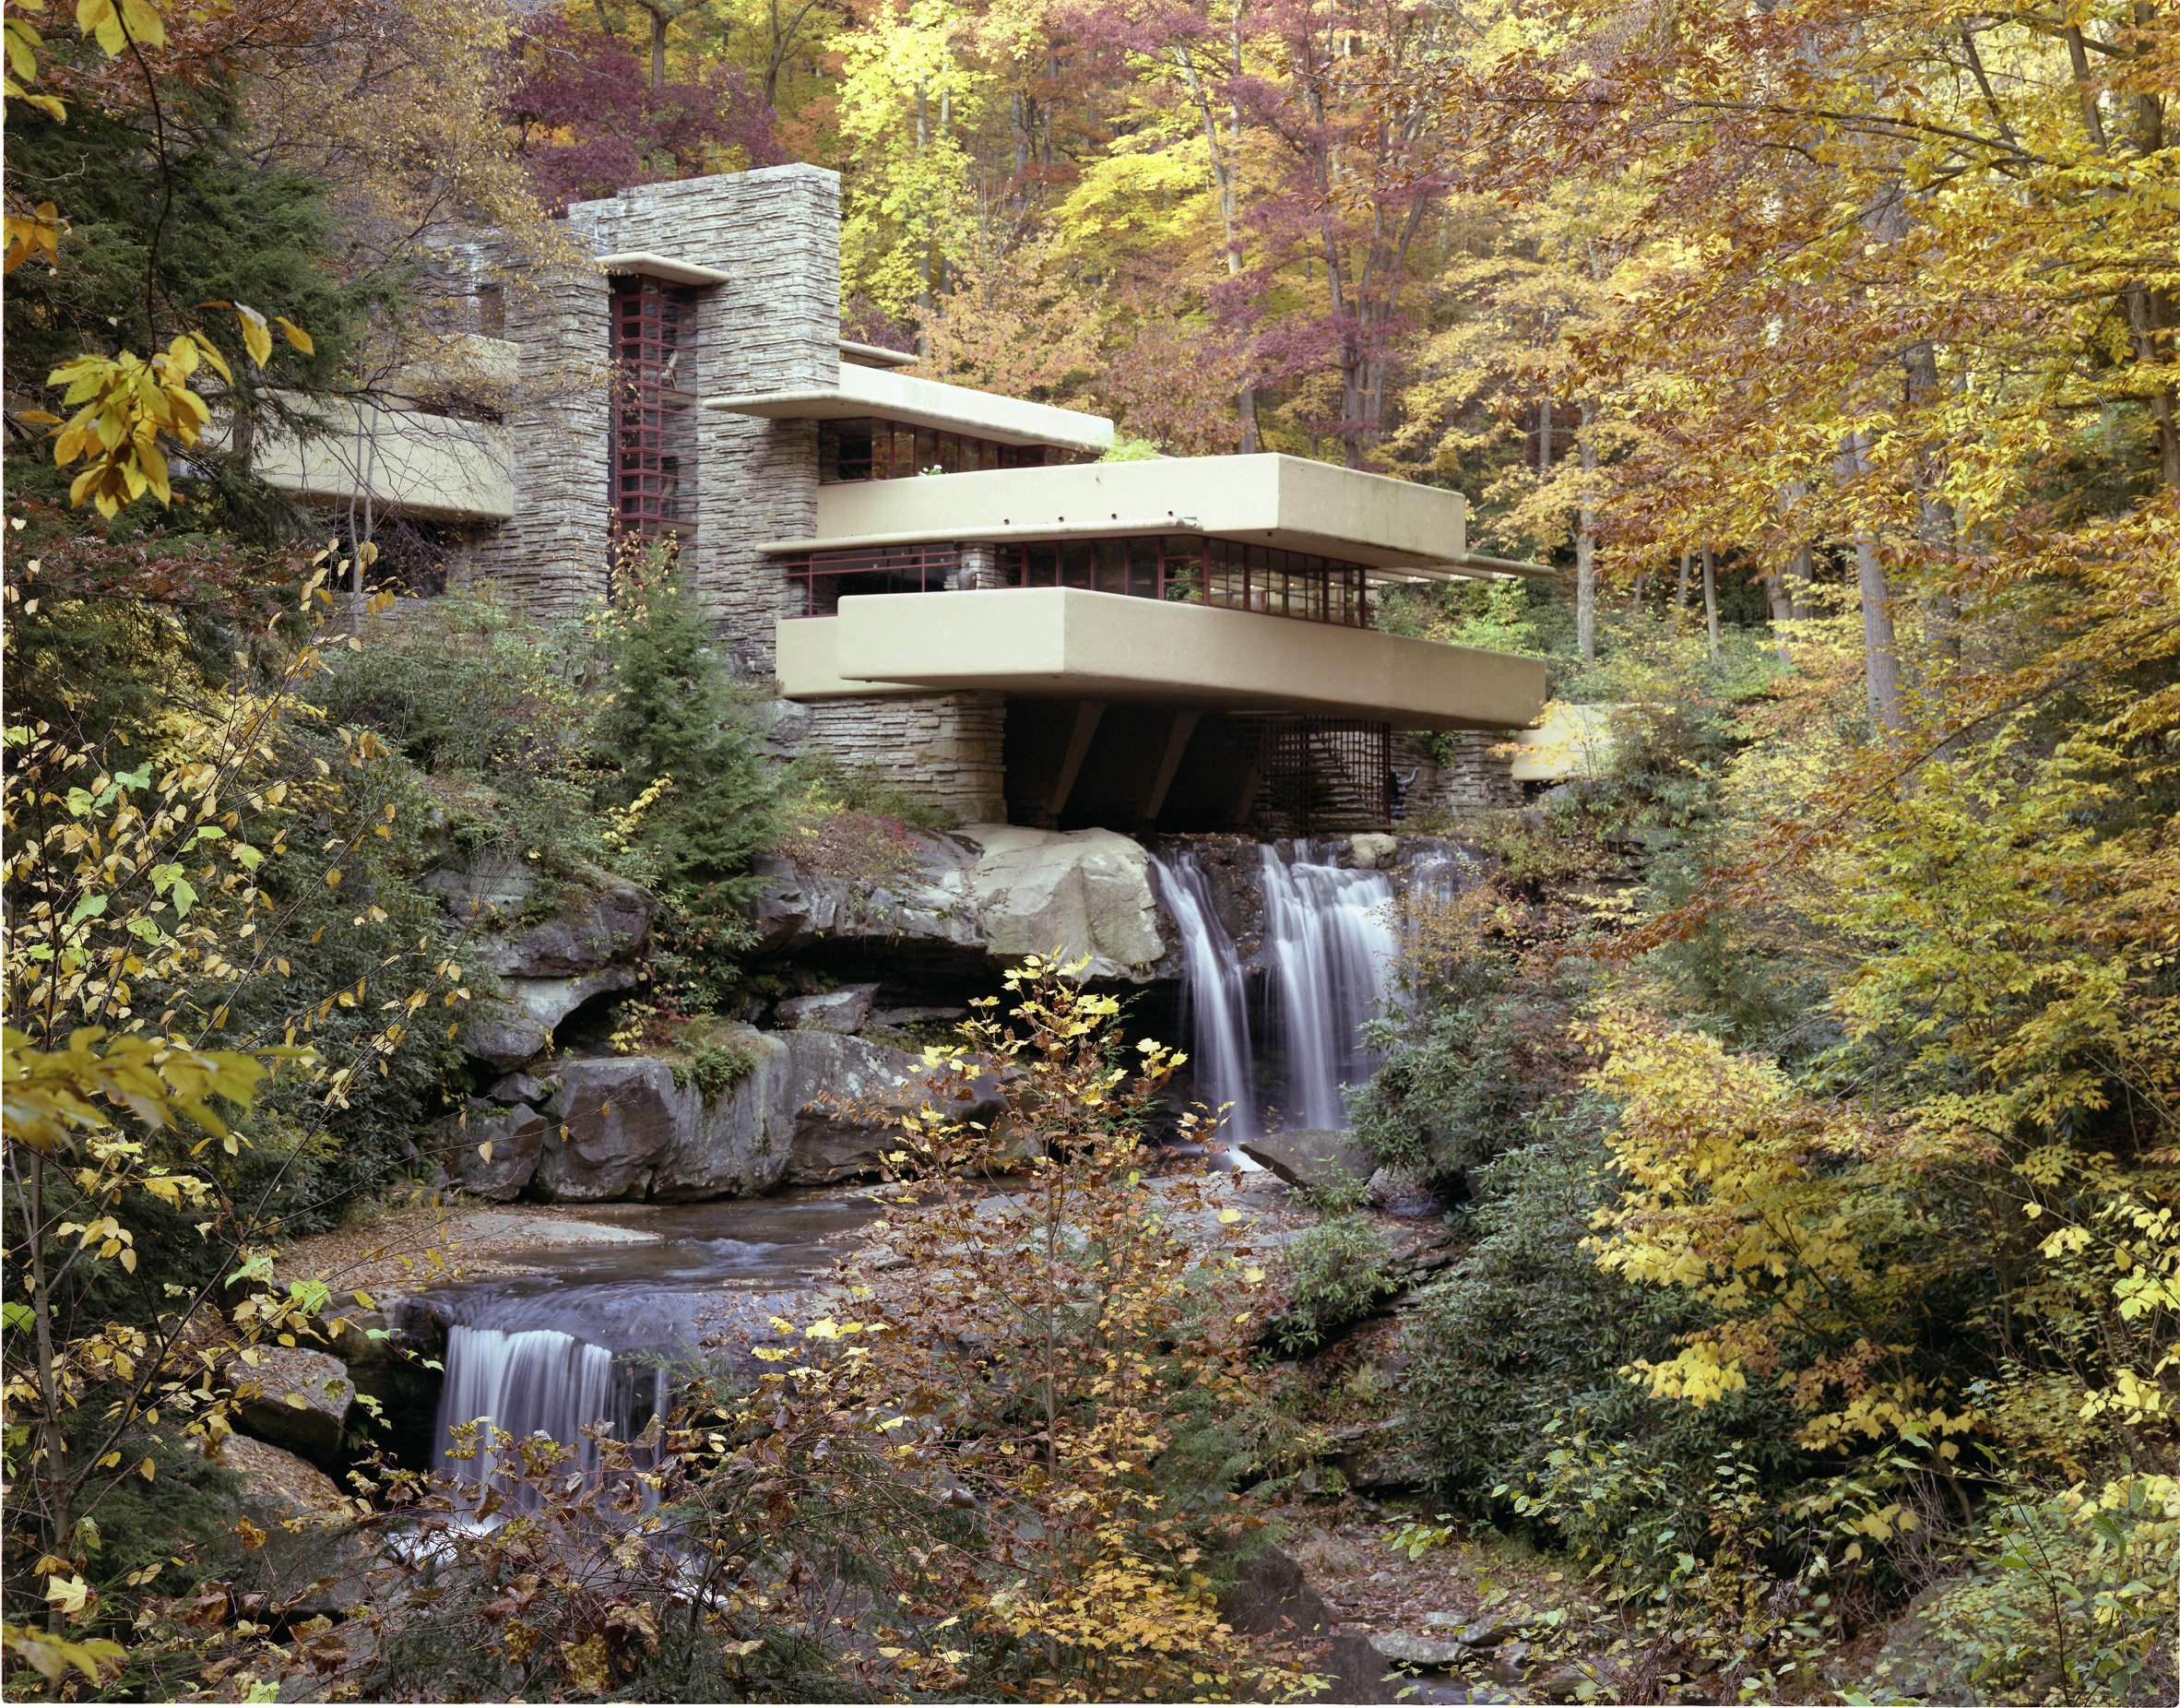 Frank Lloyd Wright integrated architecture into nature at Fallingwater